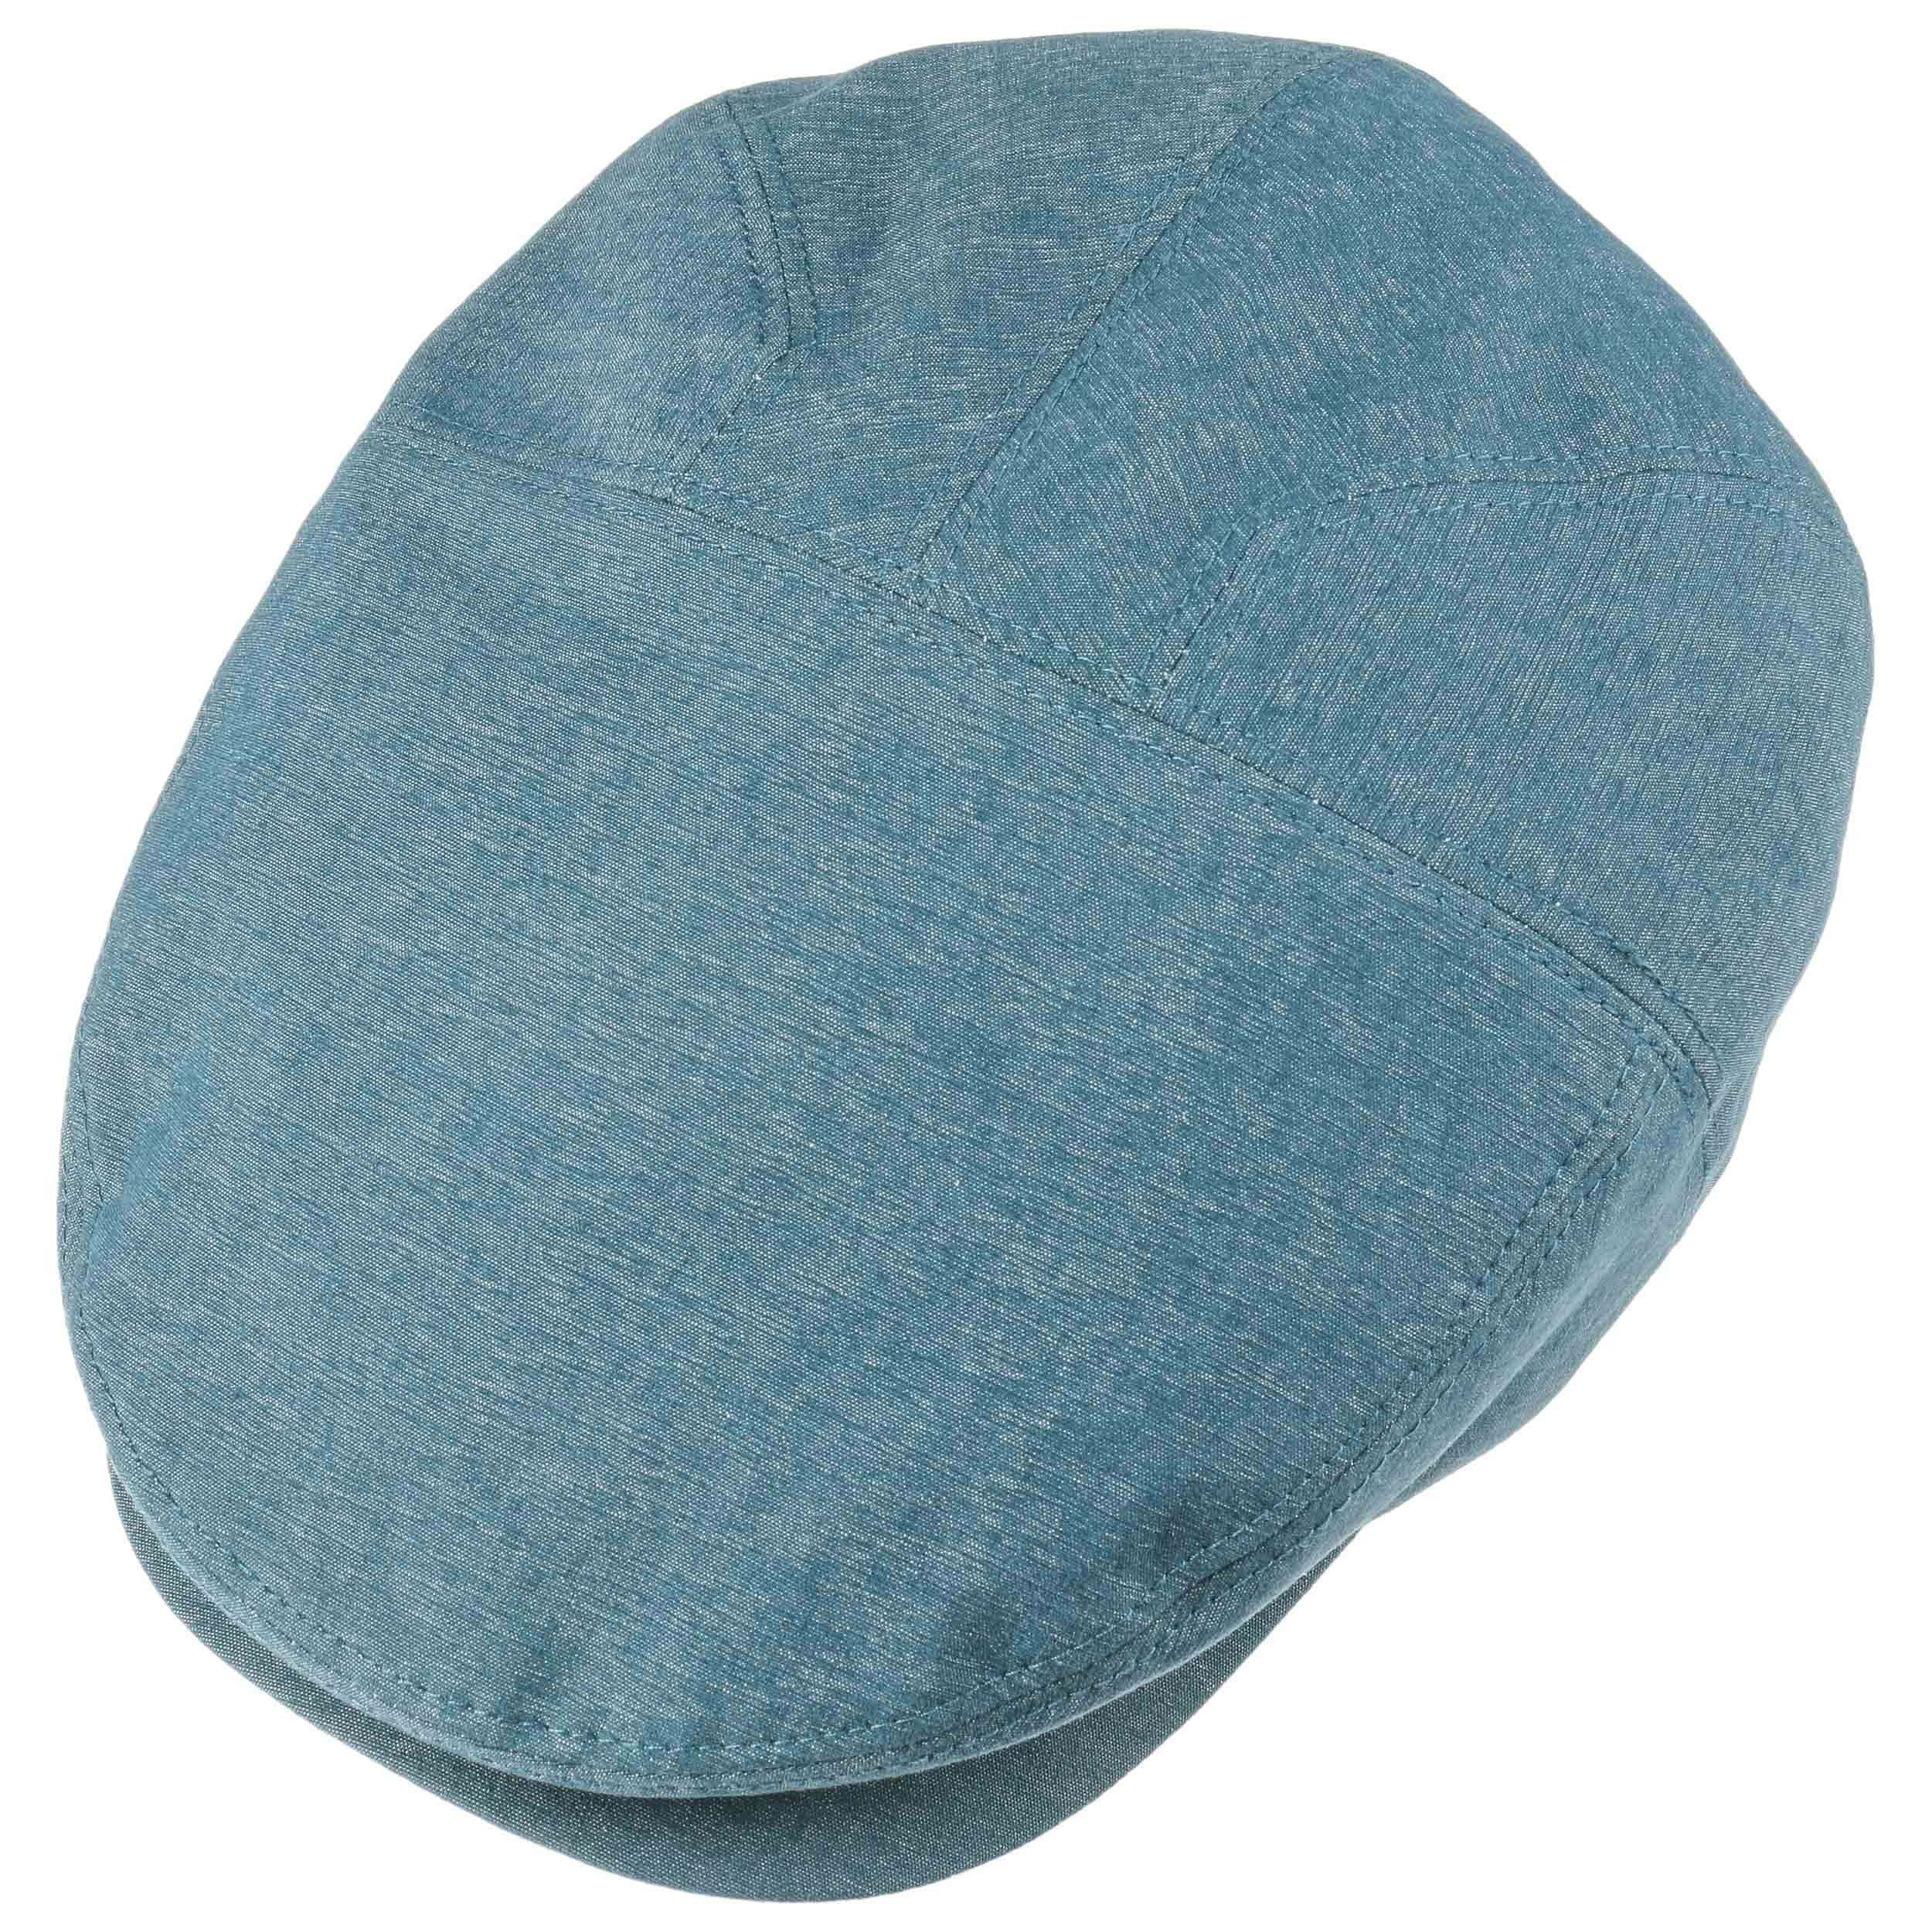 1be86ab85628 Keter Flat Cap by Bailey of Hollywood - blue 1 ...